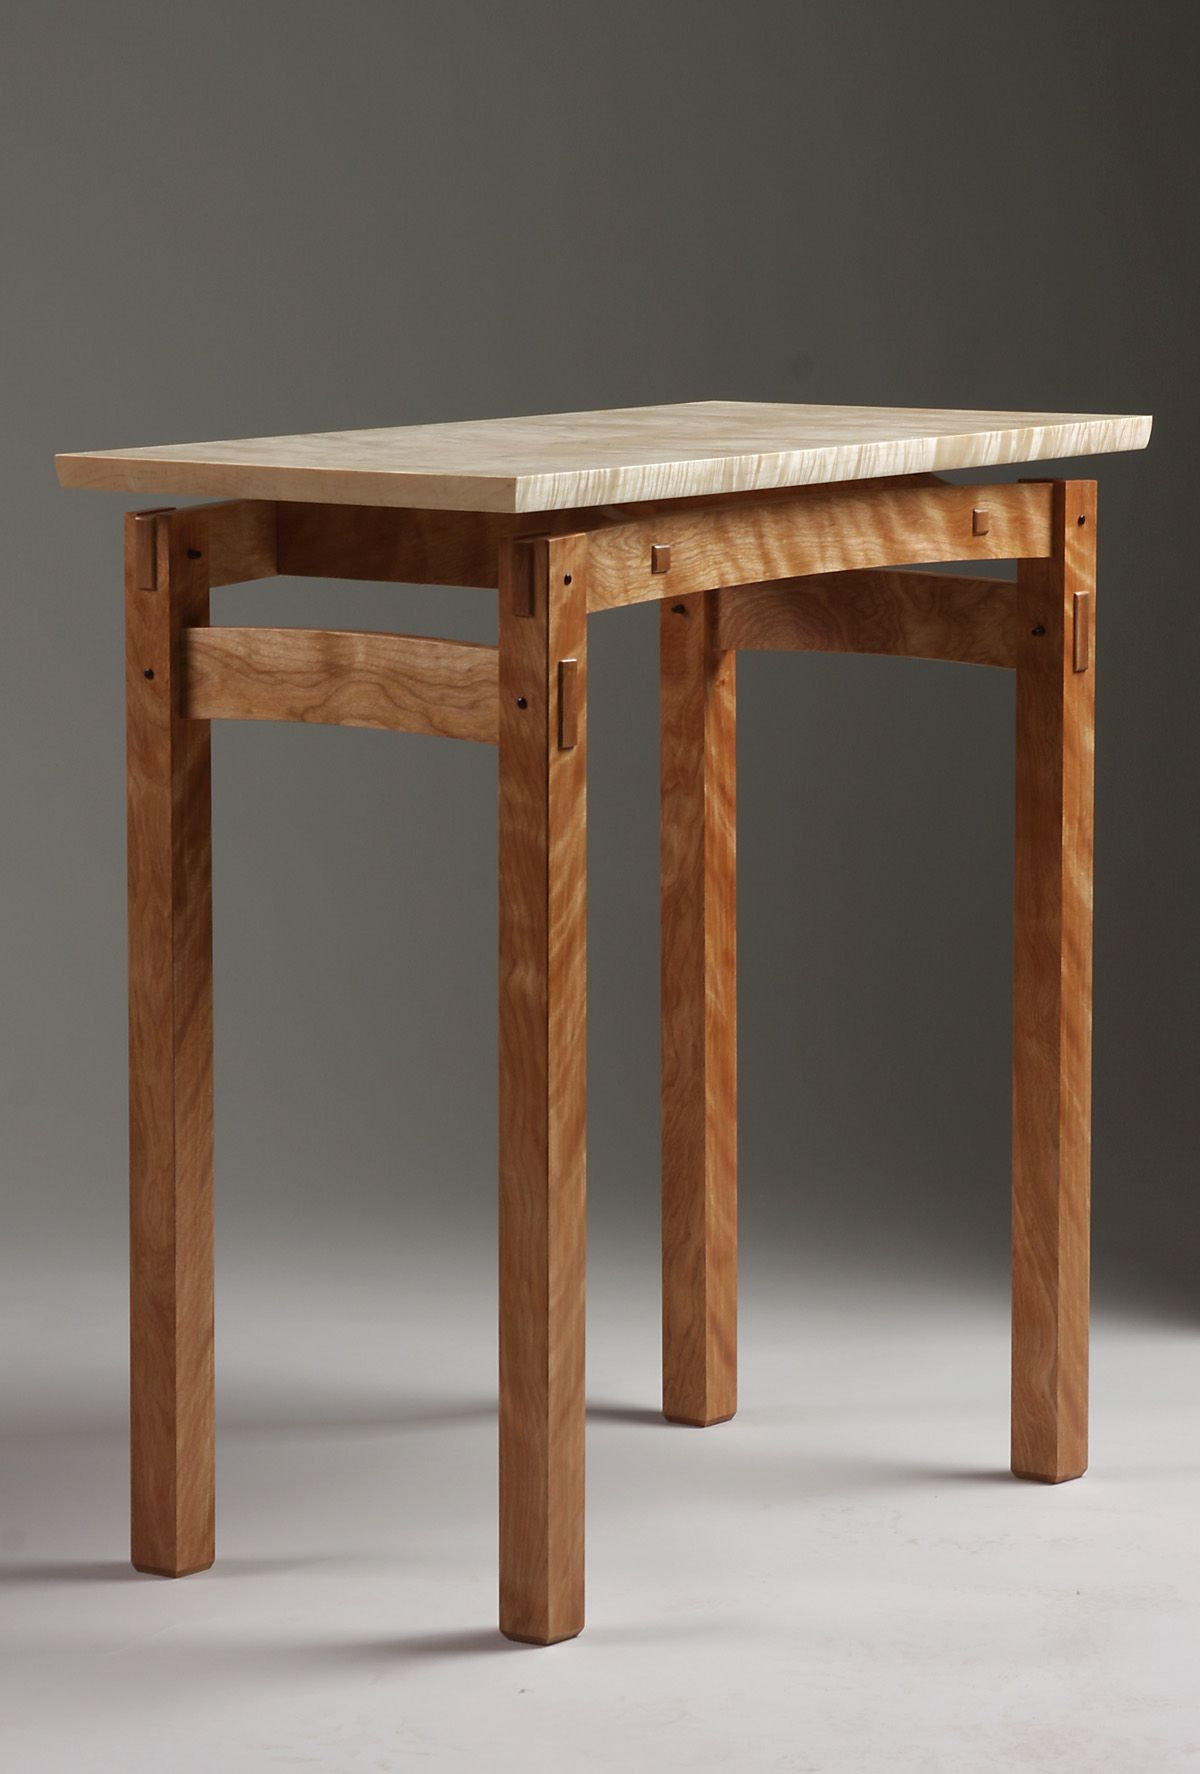 Floating Top Table Design With Flame Birch Base And Curly Maple Top.